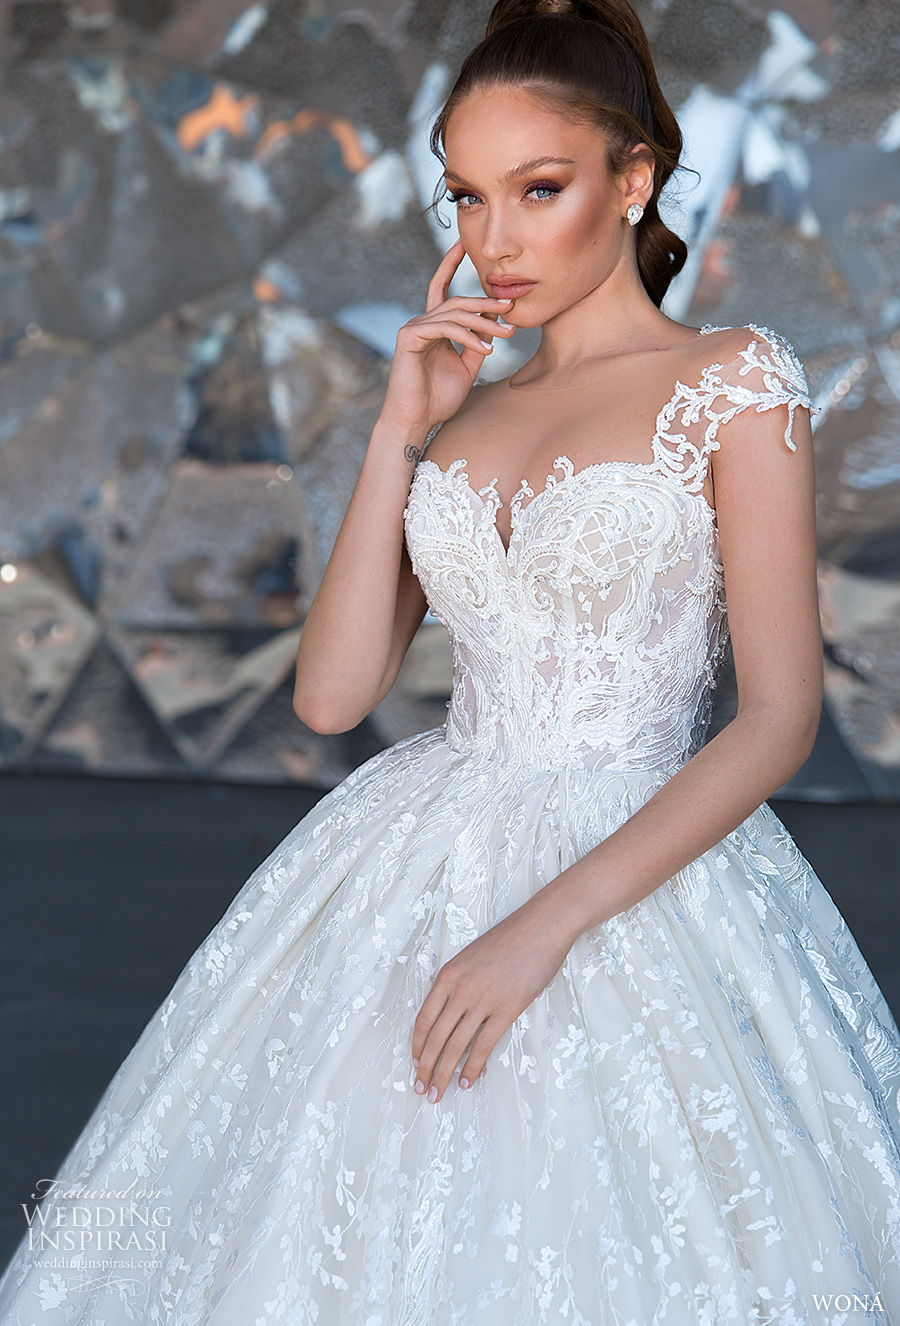 wona 2020 diva bridal cap sleeves sweetheart neckline full embellishment bustier princess ball gown a  line wedding dress mid back royal train (11) zv